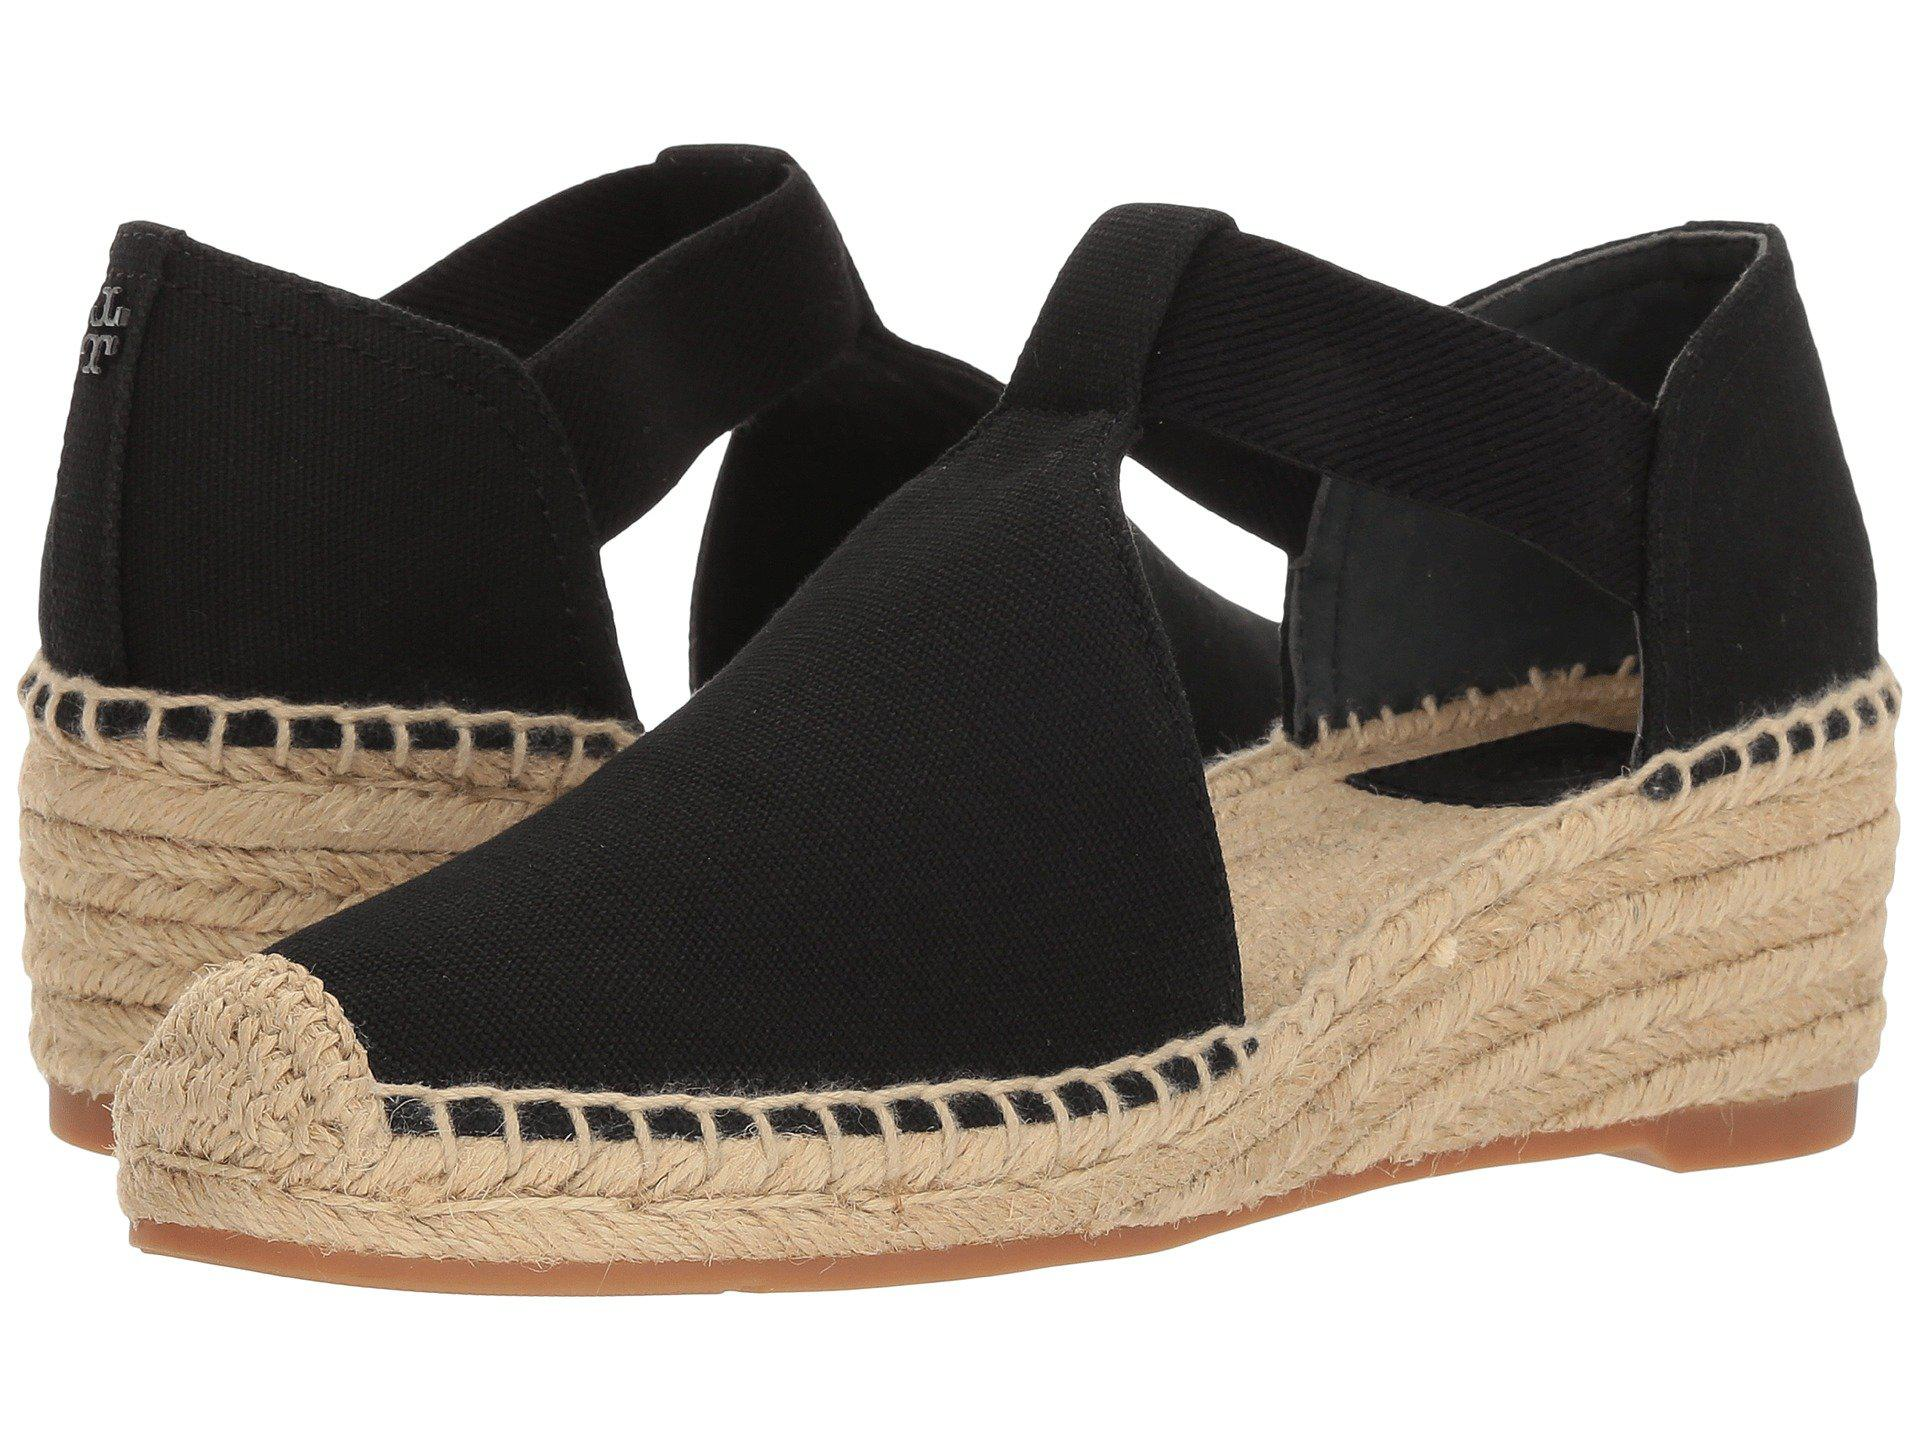 97071fc7426 Lyst - Tory Burch Catalina 3 50mm Espadrille in Black